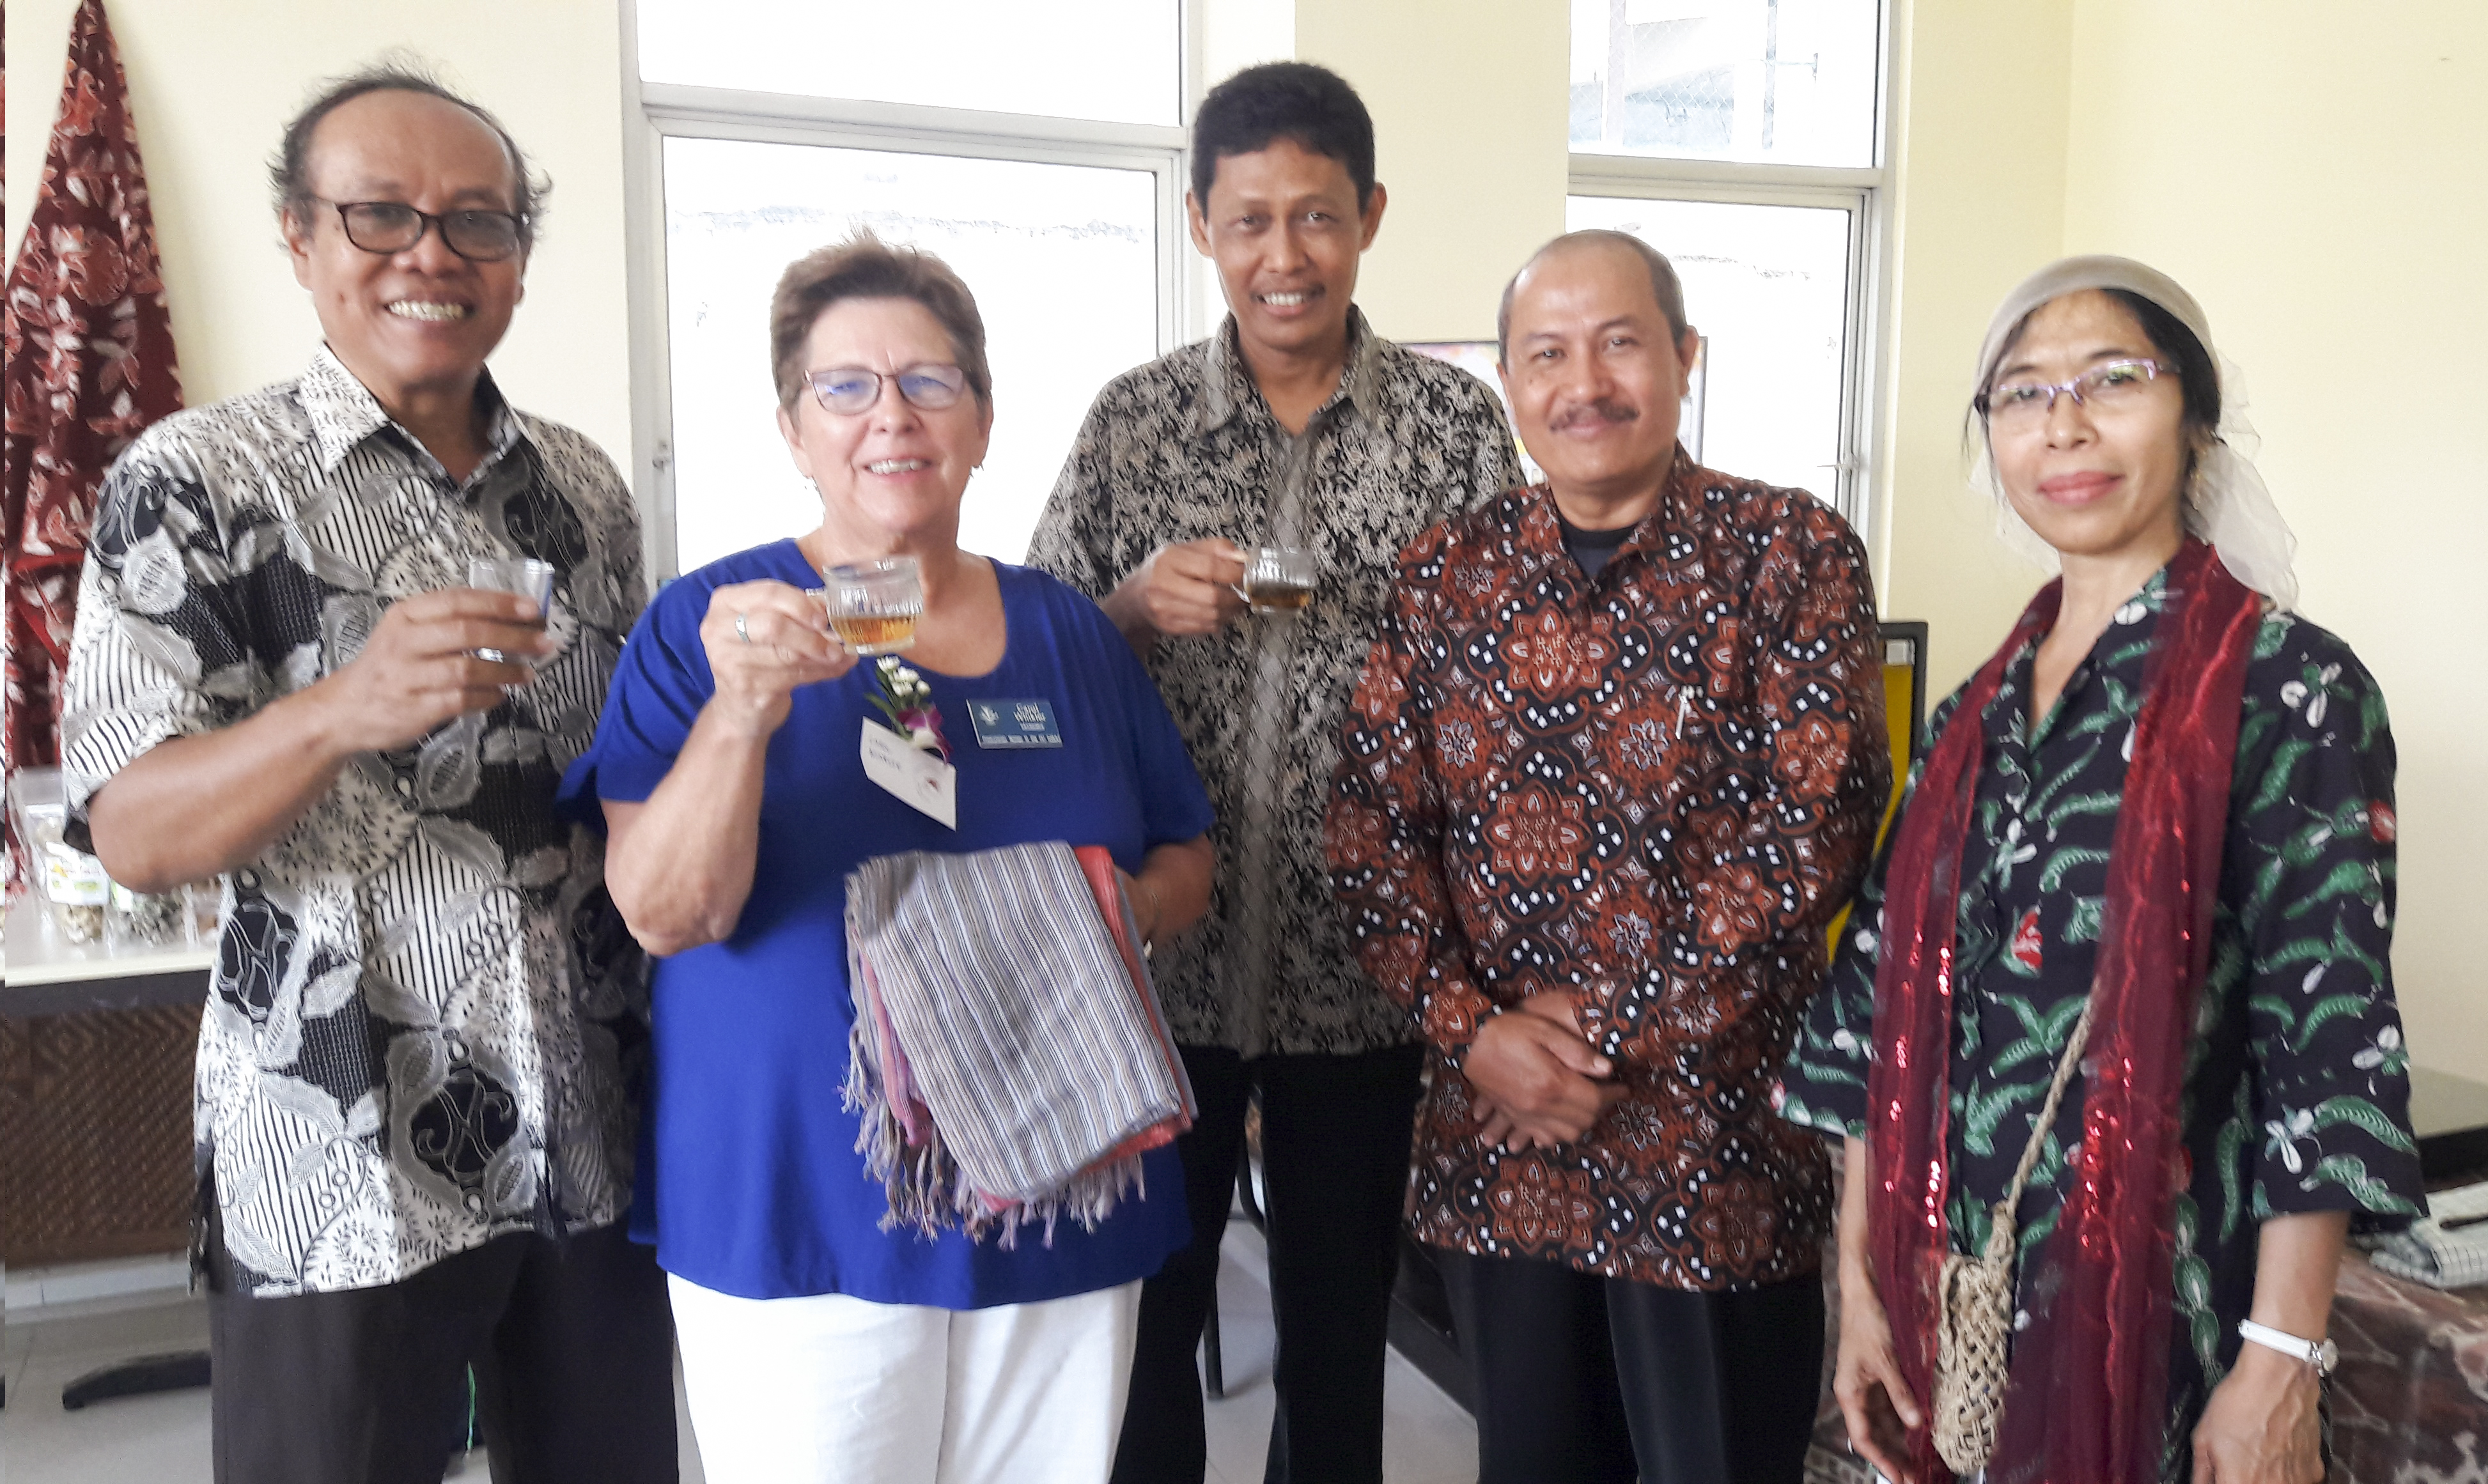 PW moderator (second from left) and workshop lecturers enjoy tea with Sukahadi. Farsijana appears on the far right, and Sukahadi is beside her.